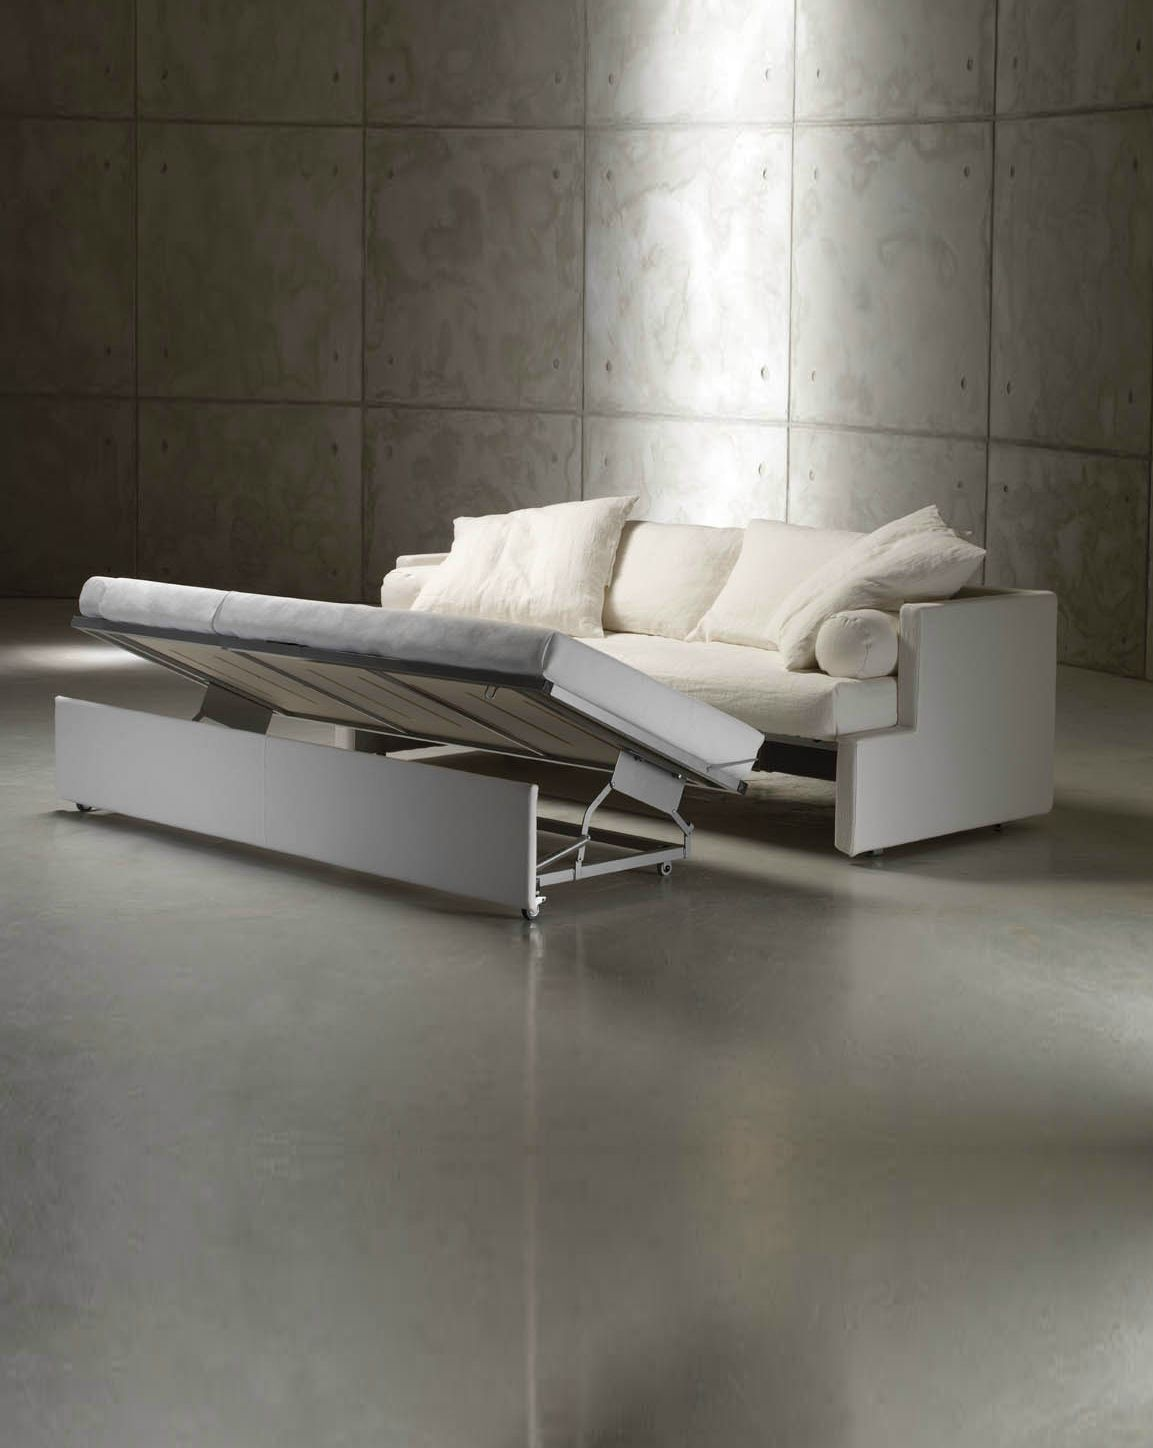 Ecksofa Bali Bali Sofabed Horm Sofa Beds Pinterest Sofa Bed Sofa And Bed